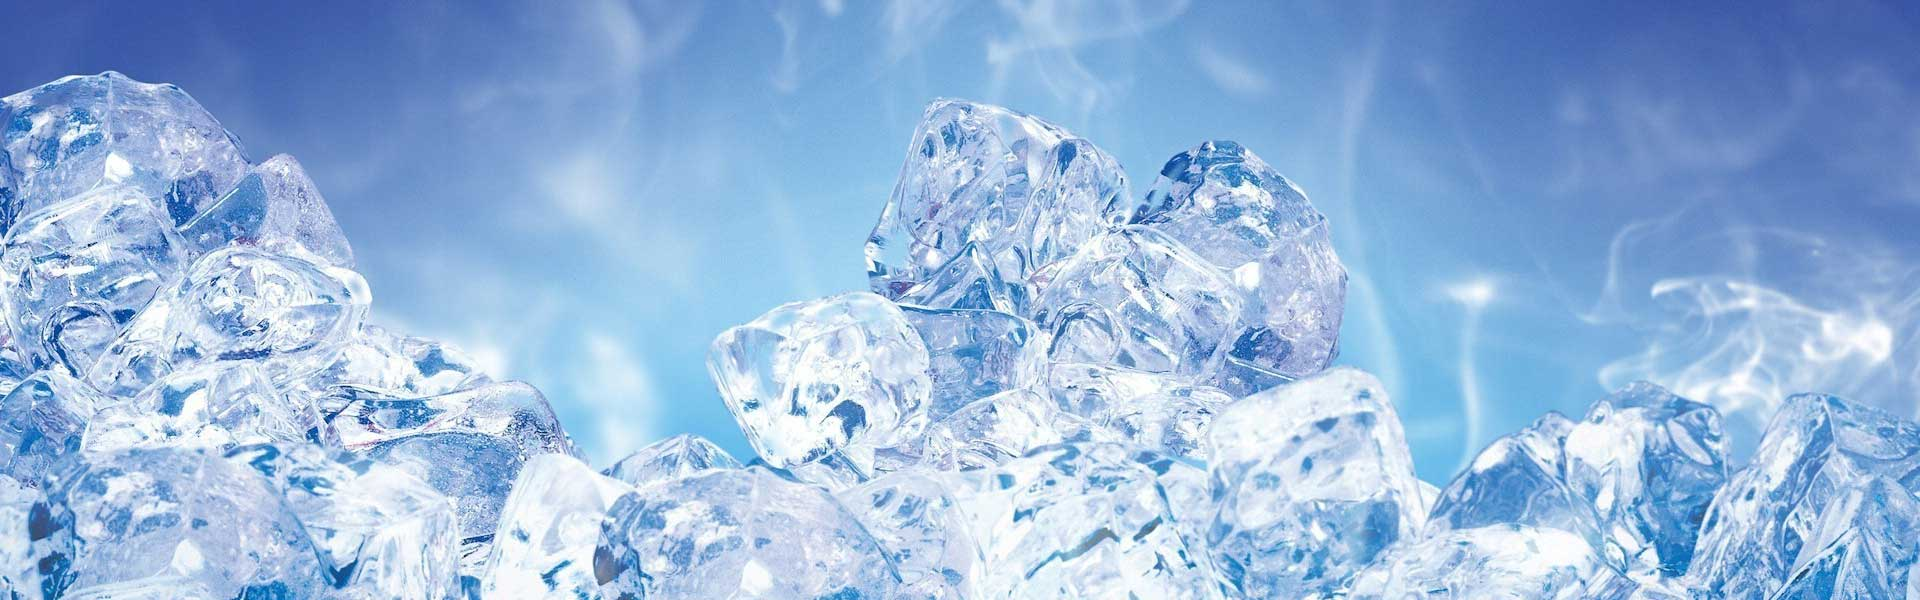 Ice Slide Background